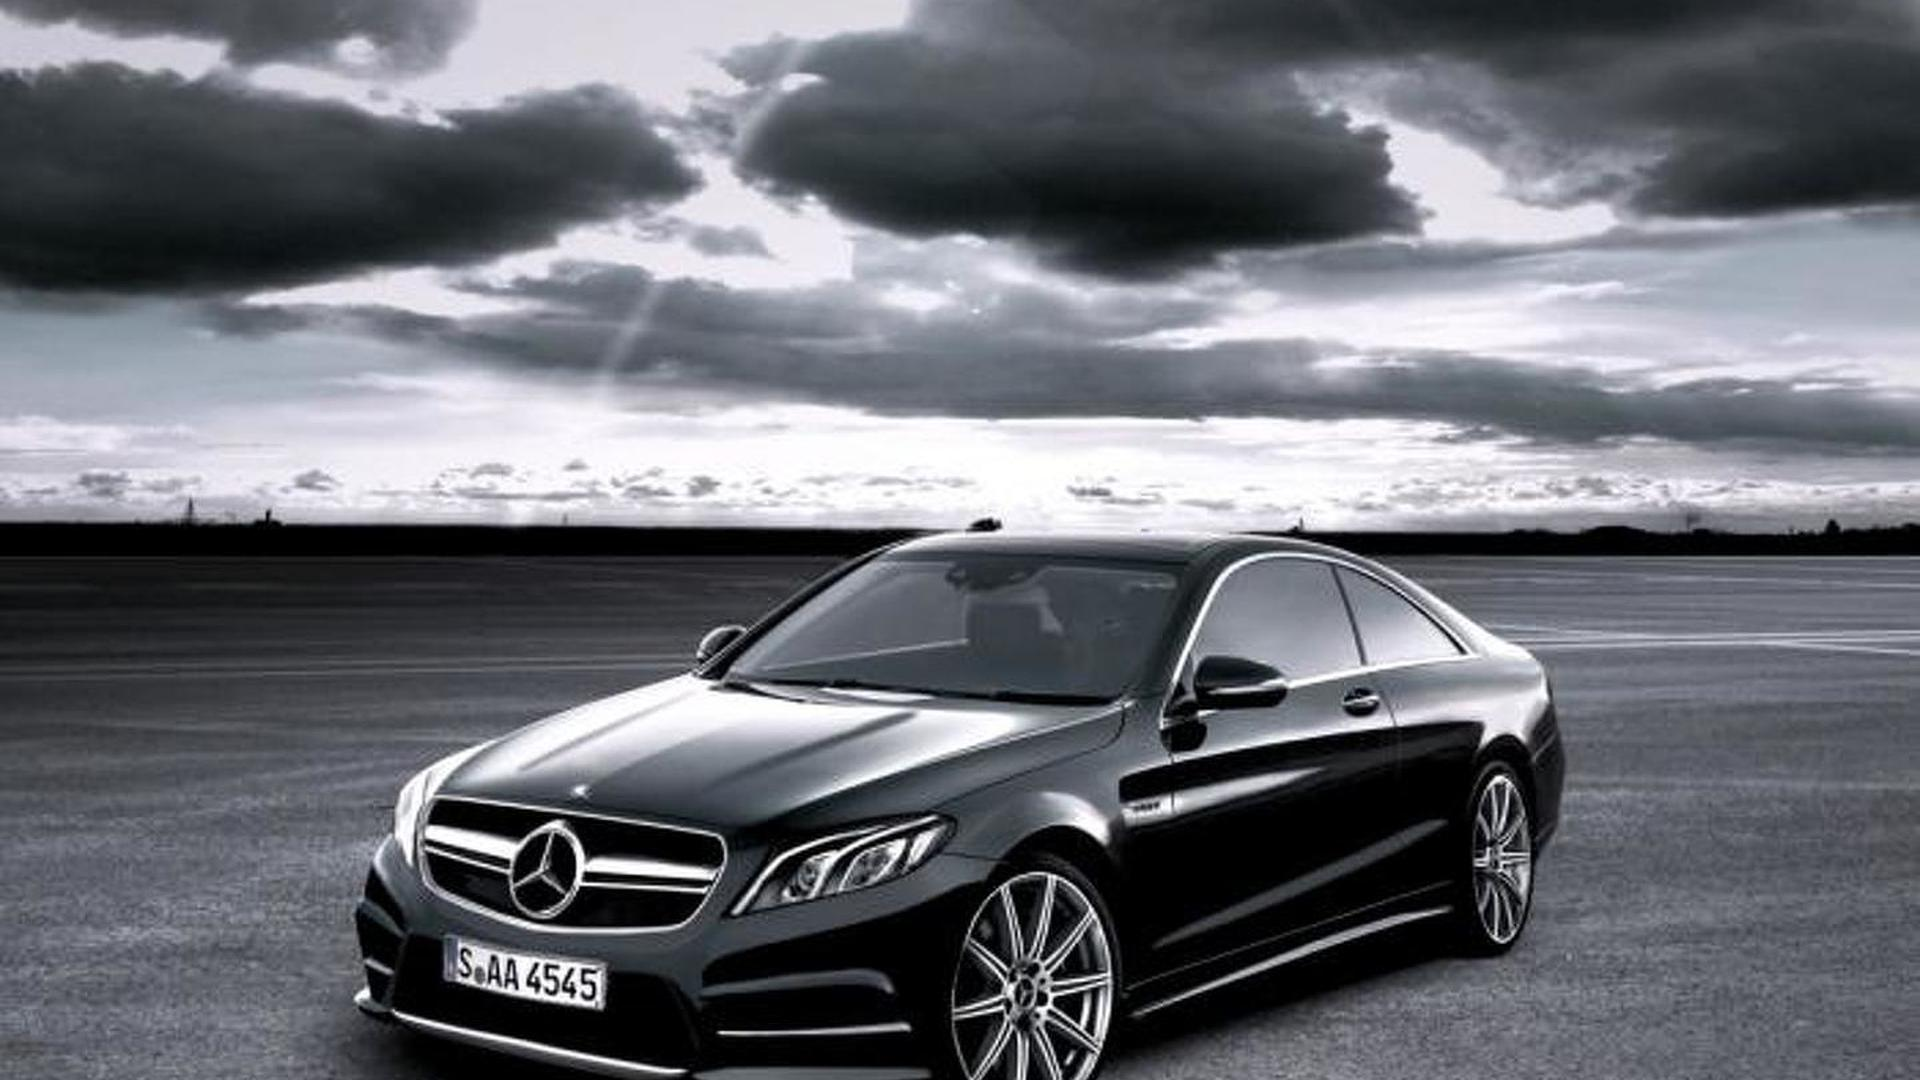 wcf reader envisions next-gen mercedes-benz e-class coupe and